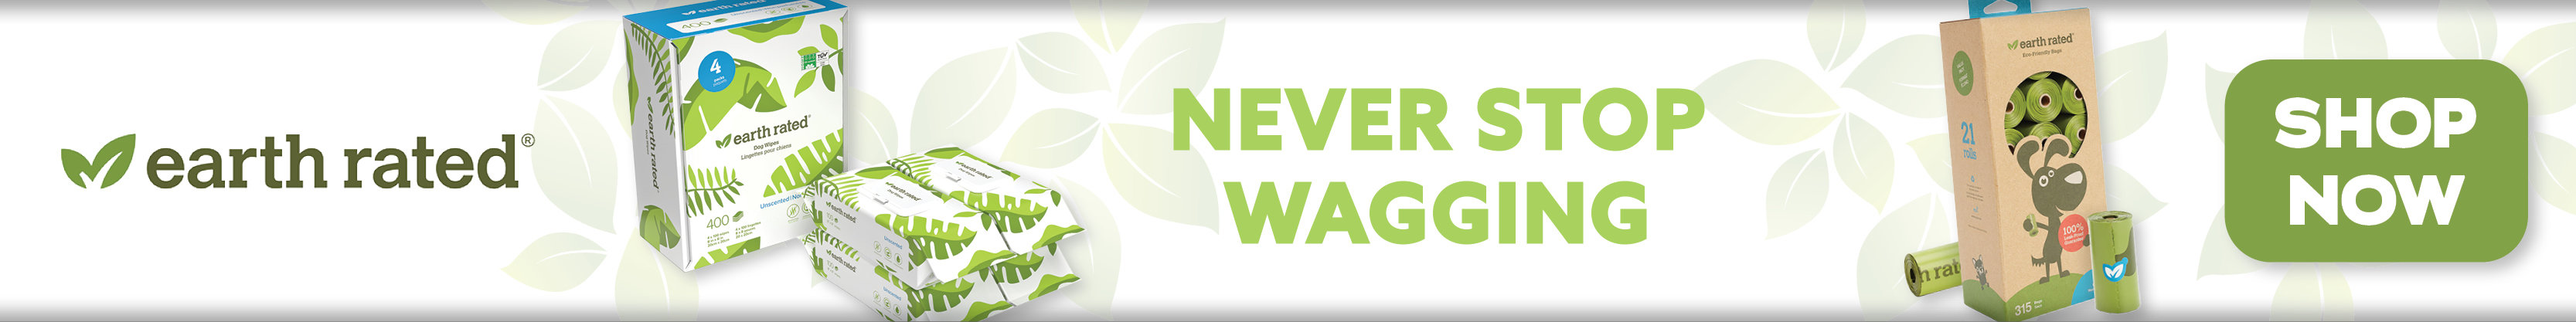 Earth Rated - Never Stop Wagging